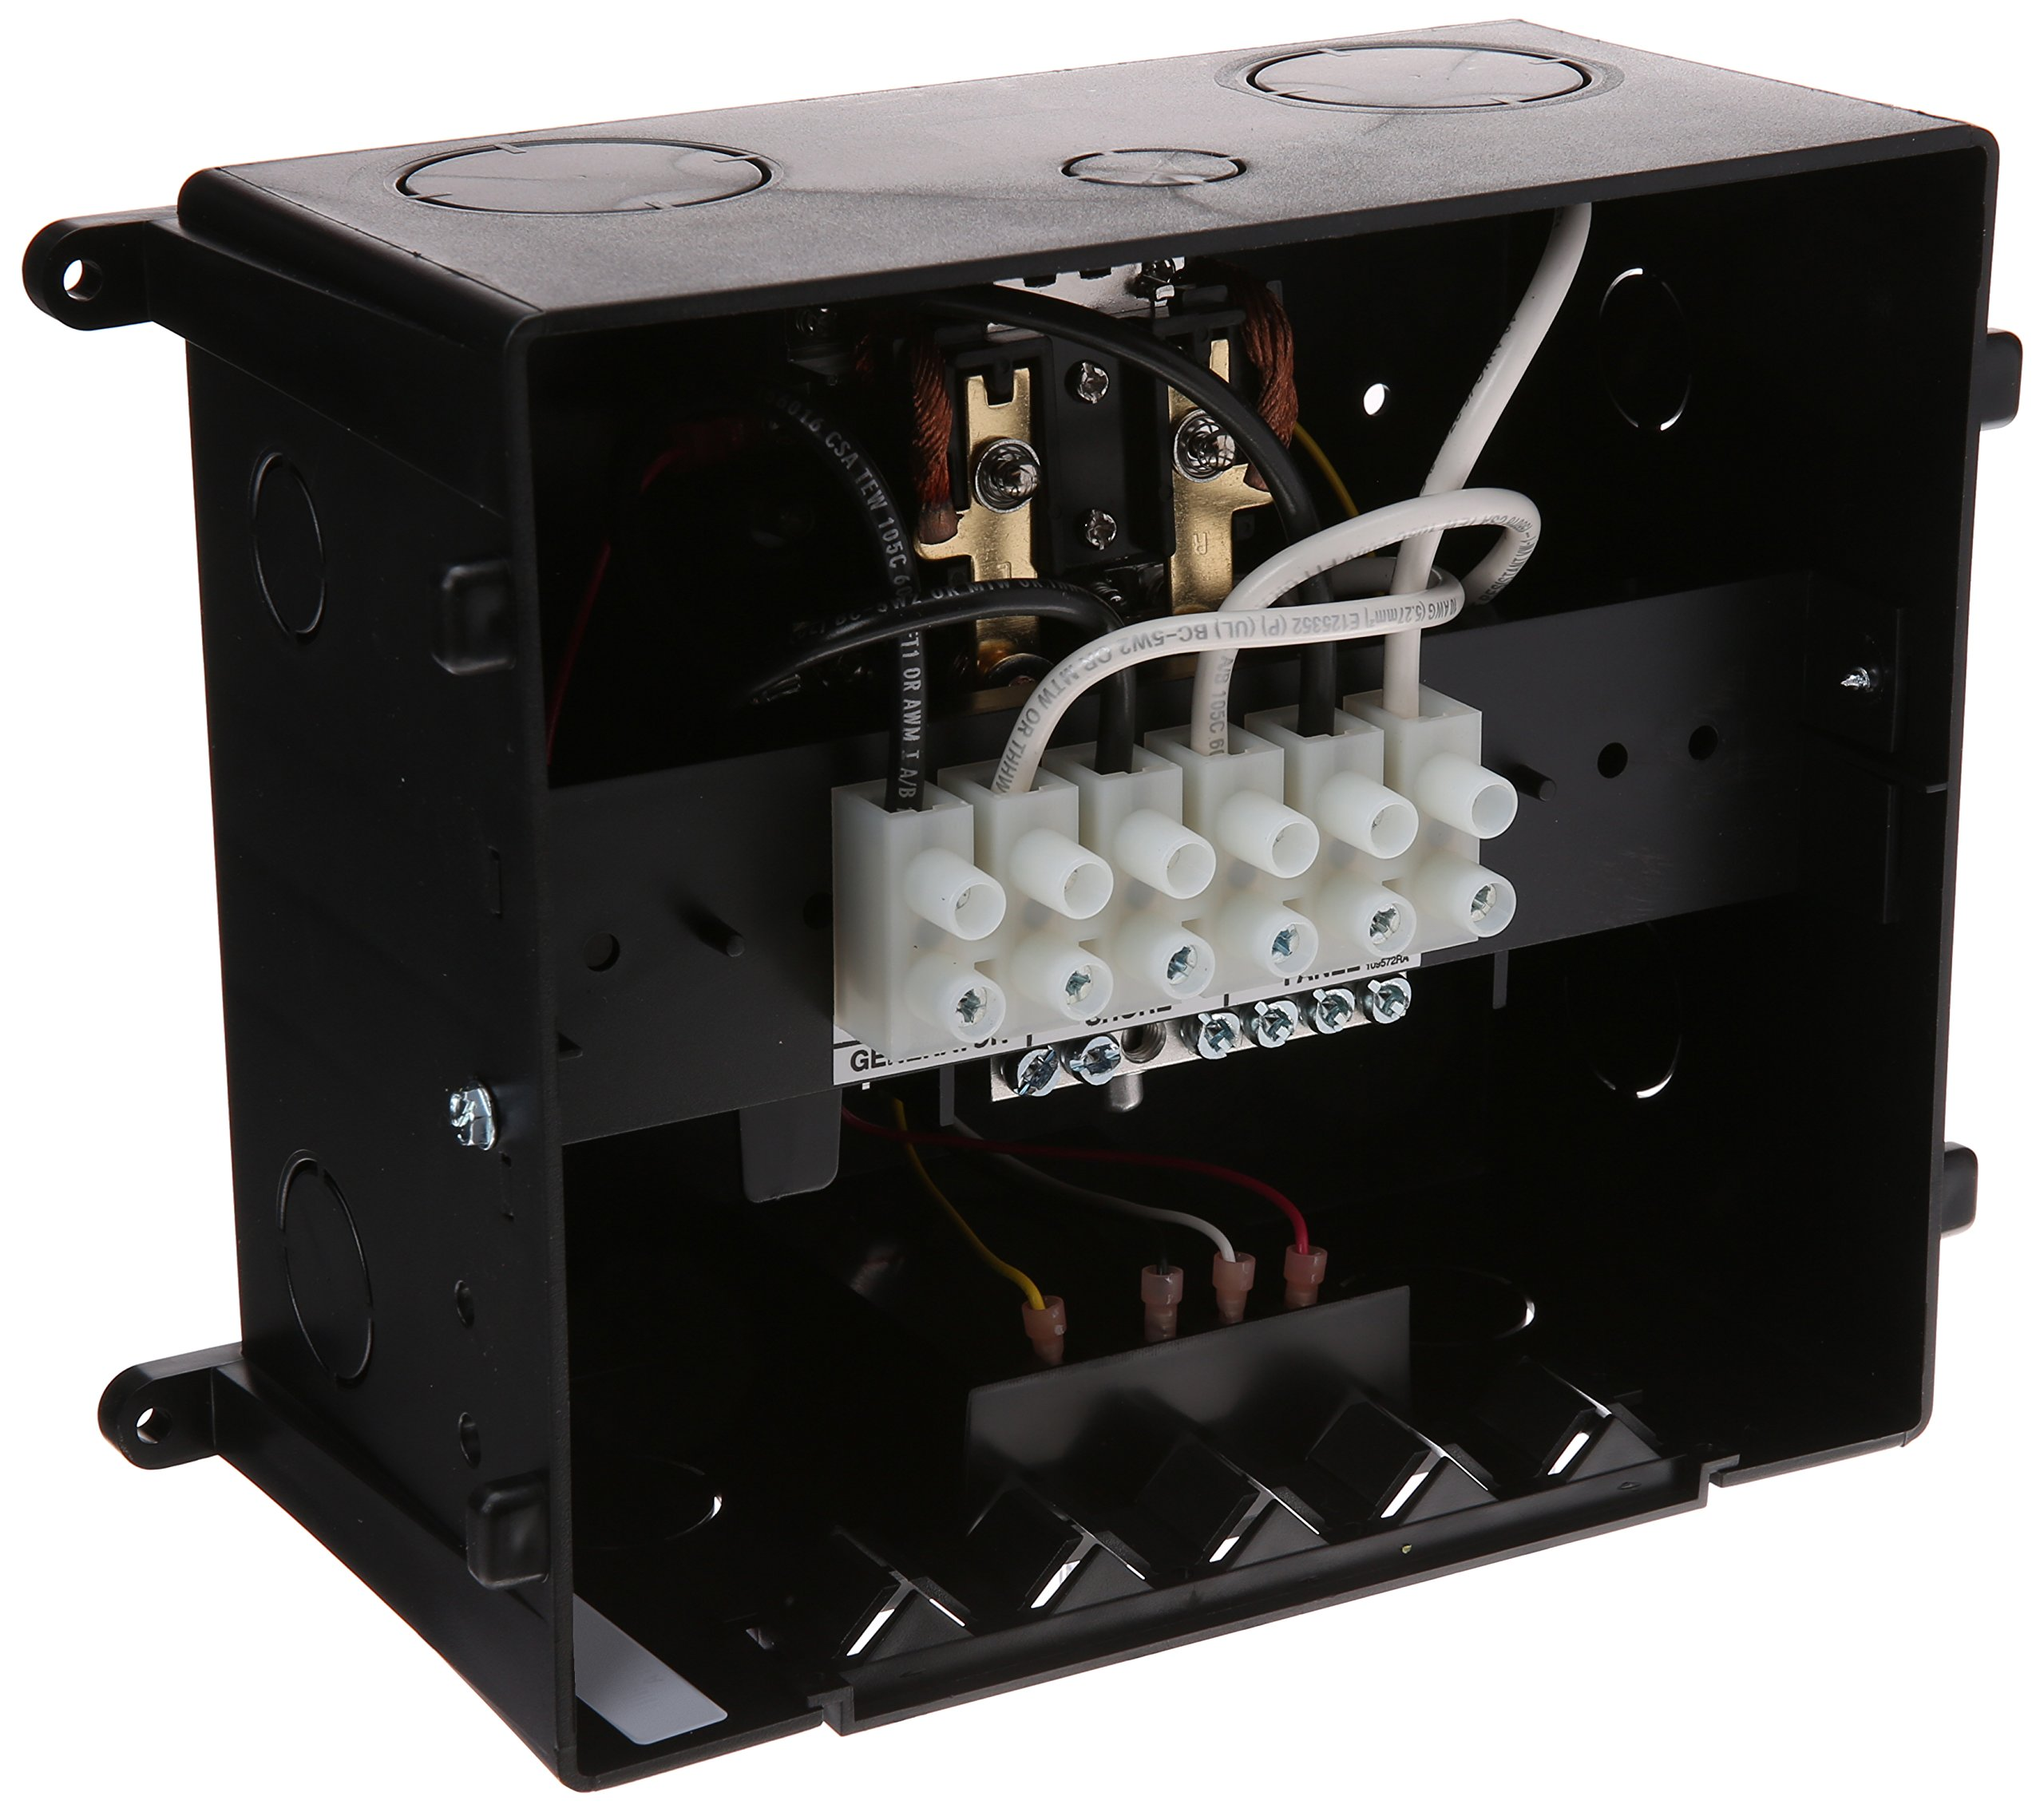 Progressive Dynamics PD5110610V 5100 Series Automatic Transfer Switch - 120 VAC, 30 Amp w/Screw Connection